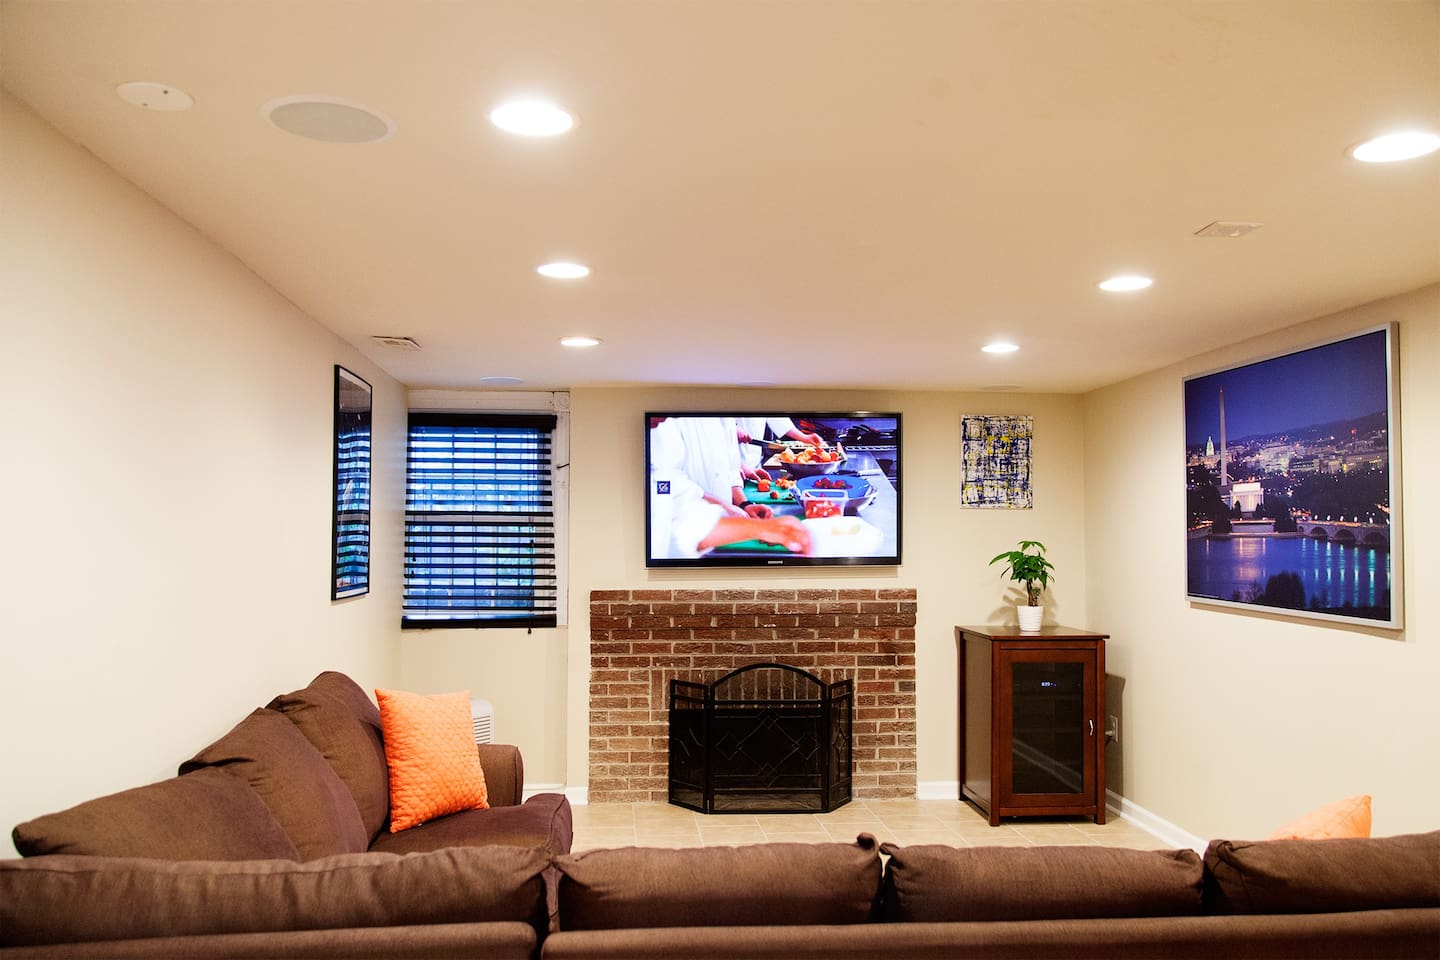 Well lit and spacious living room area with HD TV and surround sound